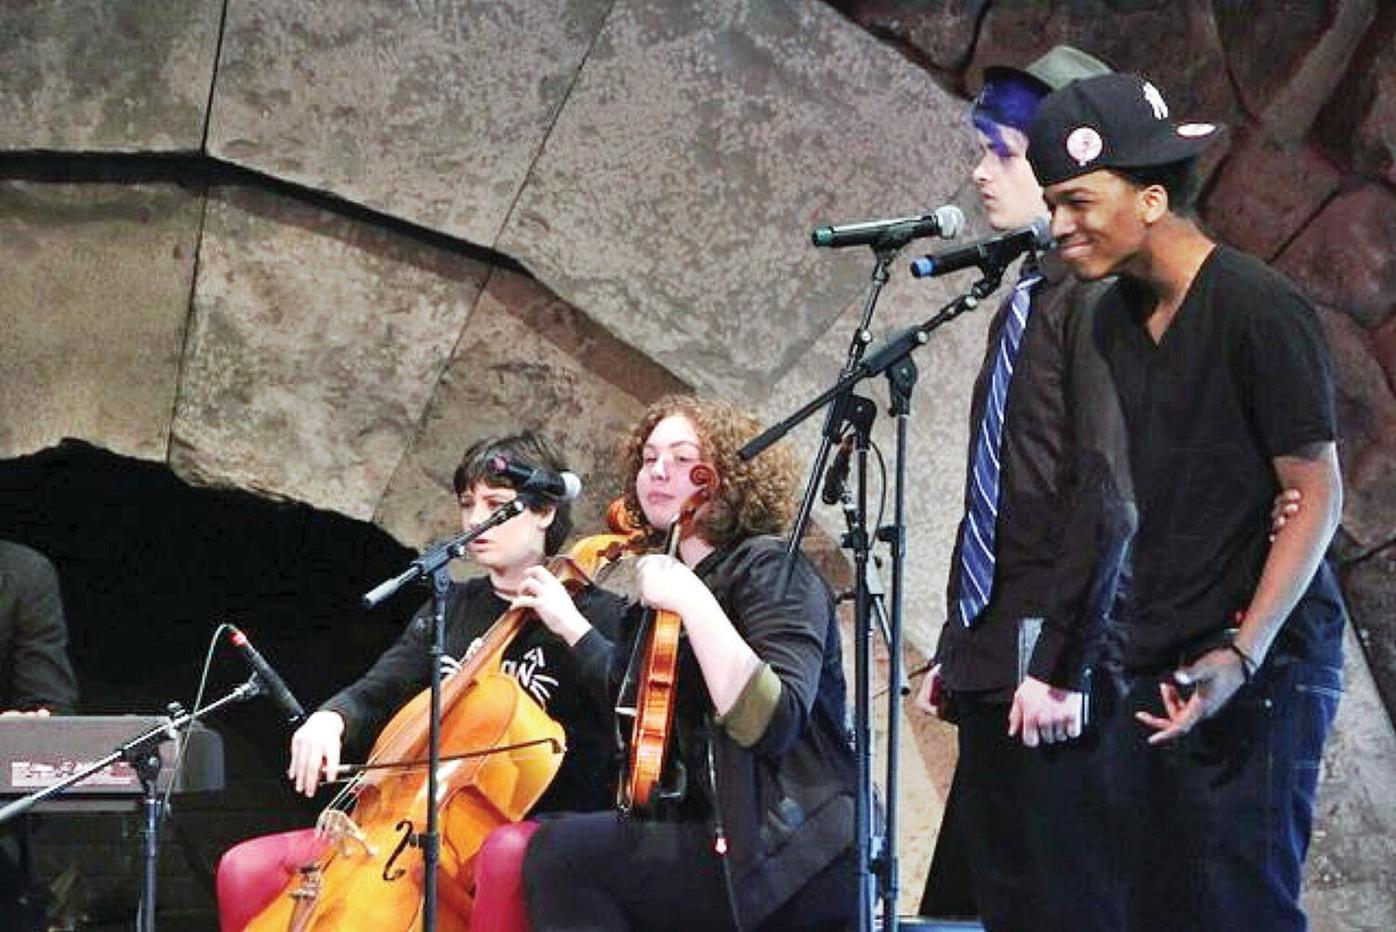 Harmonies, friendships persist for Music in Common